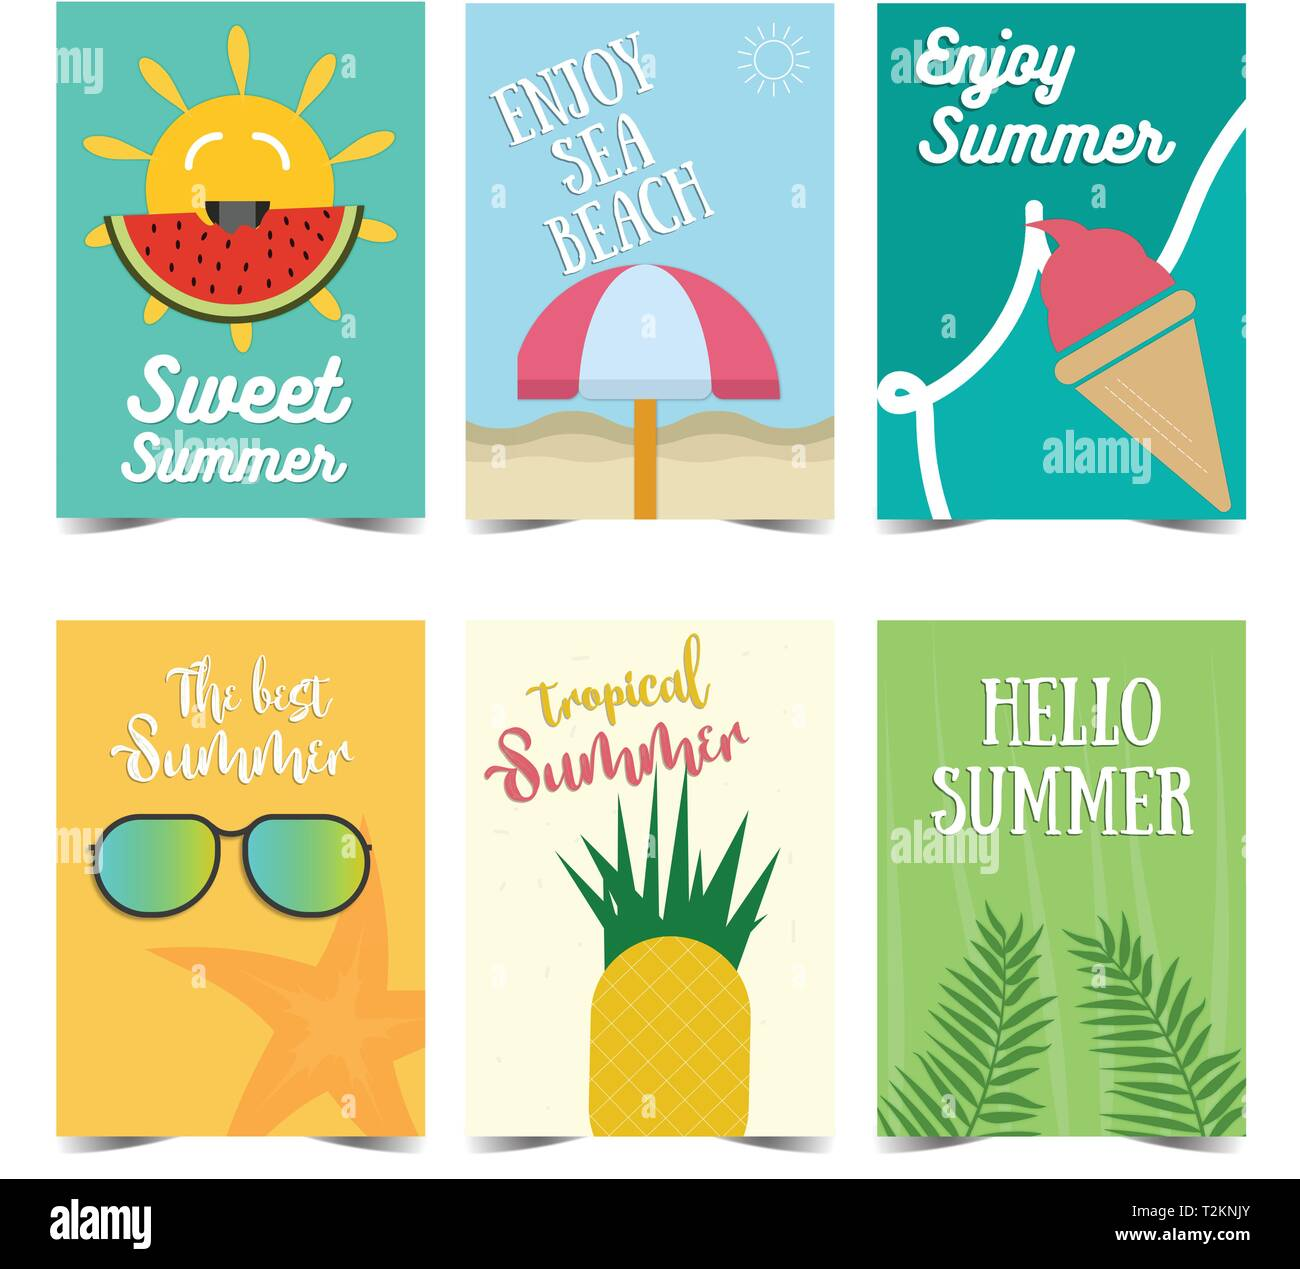 Set Of Summer Poster Design Vector Illustrations For Summer Holiday Travel And Vacation Restaurant And Bar Menu Part And Beach Vacation Stock Vector Image Art Alamy